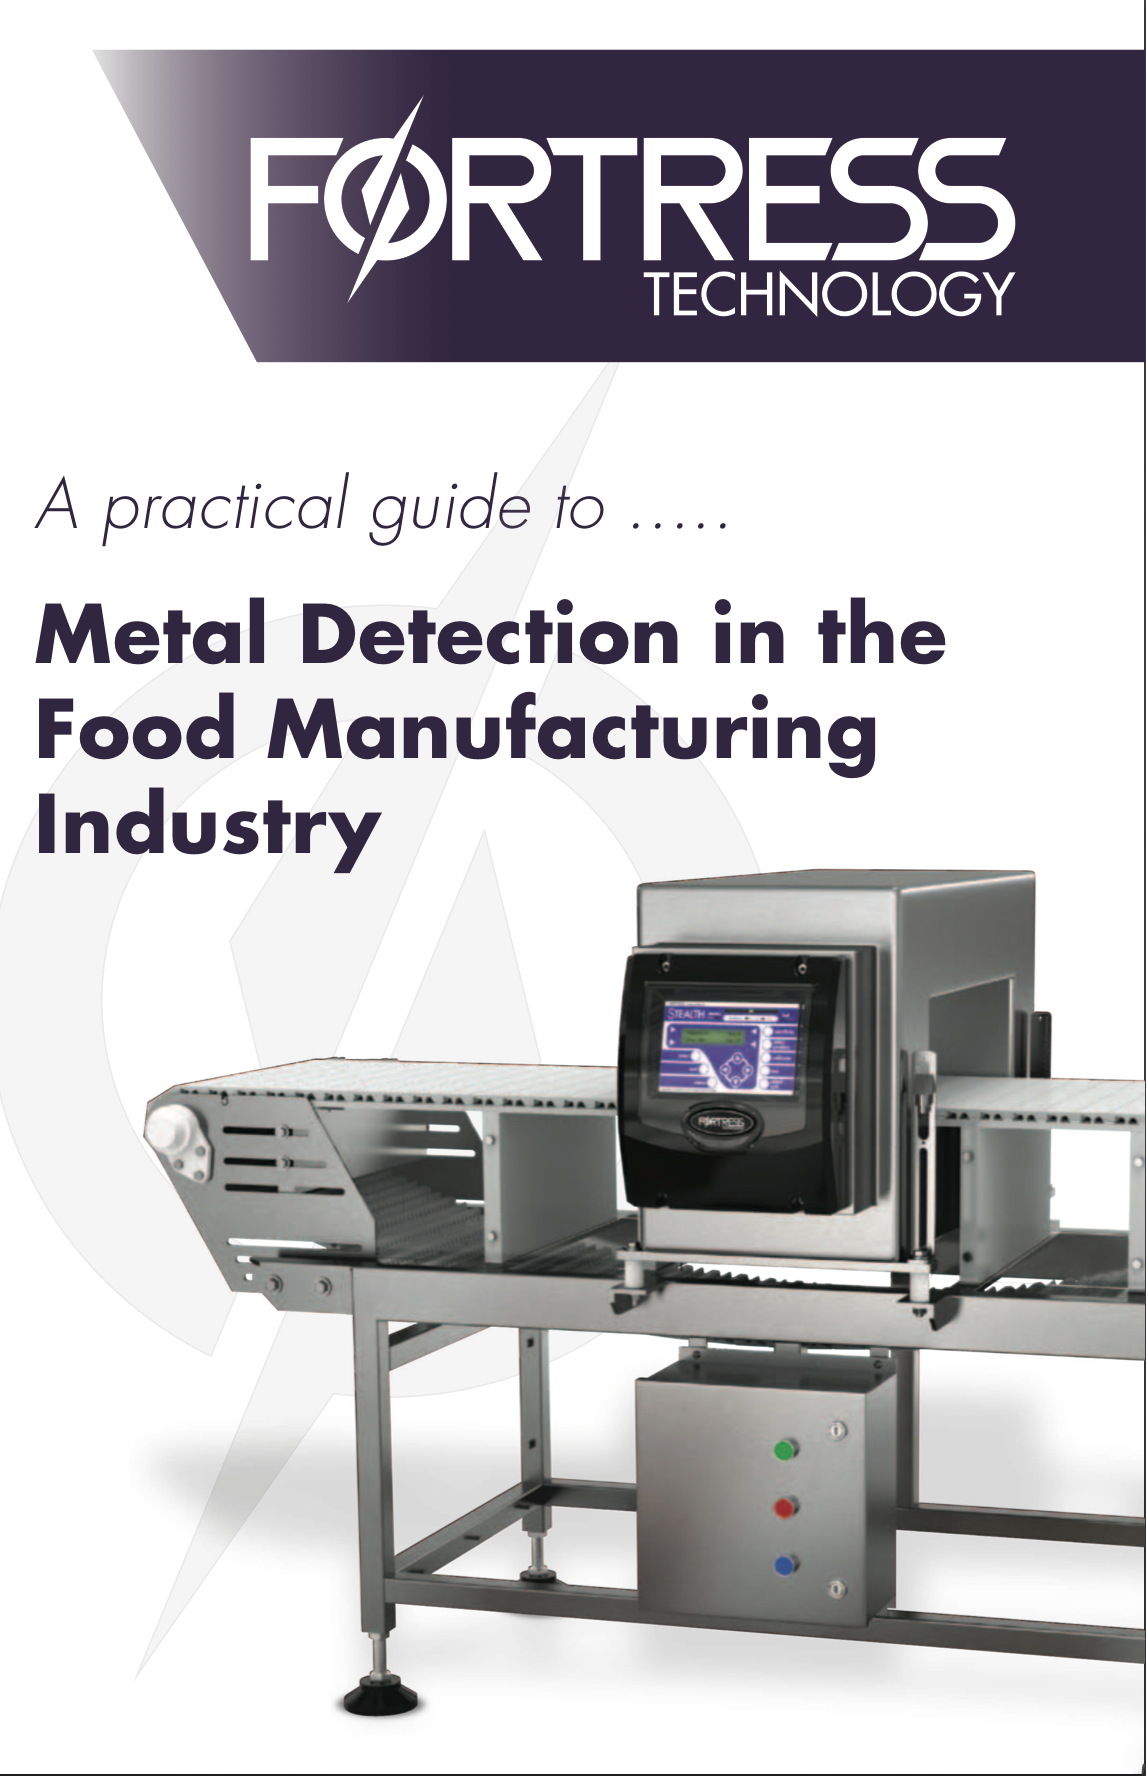 A practical guide to metal detection